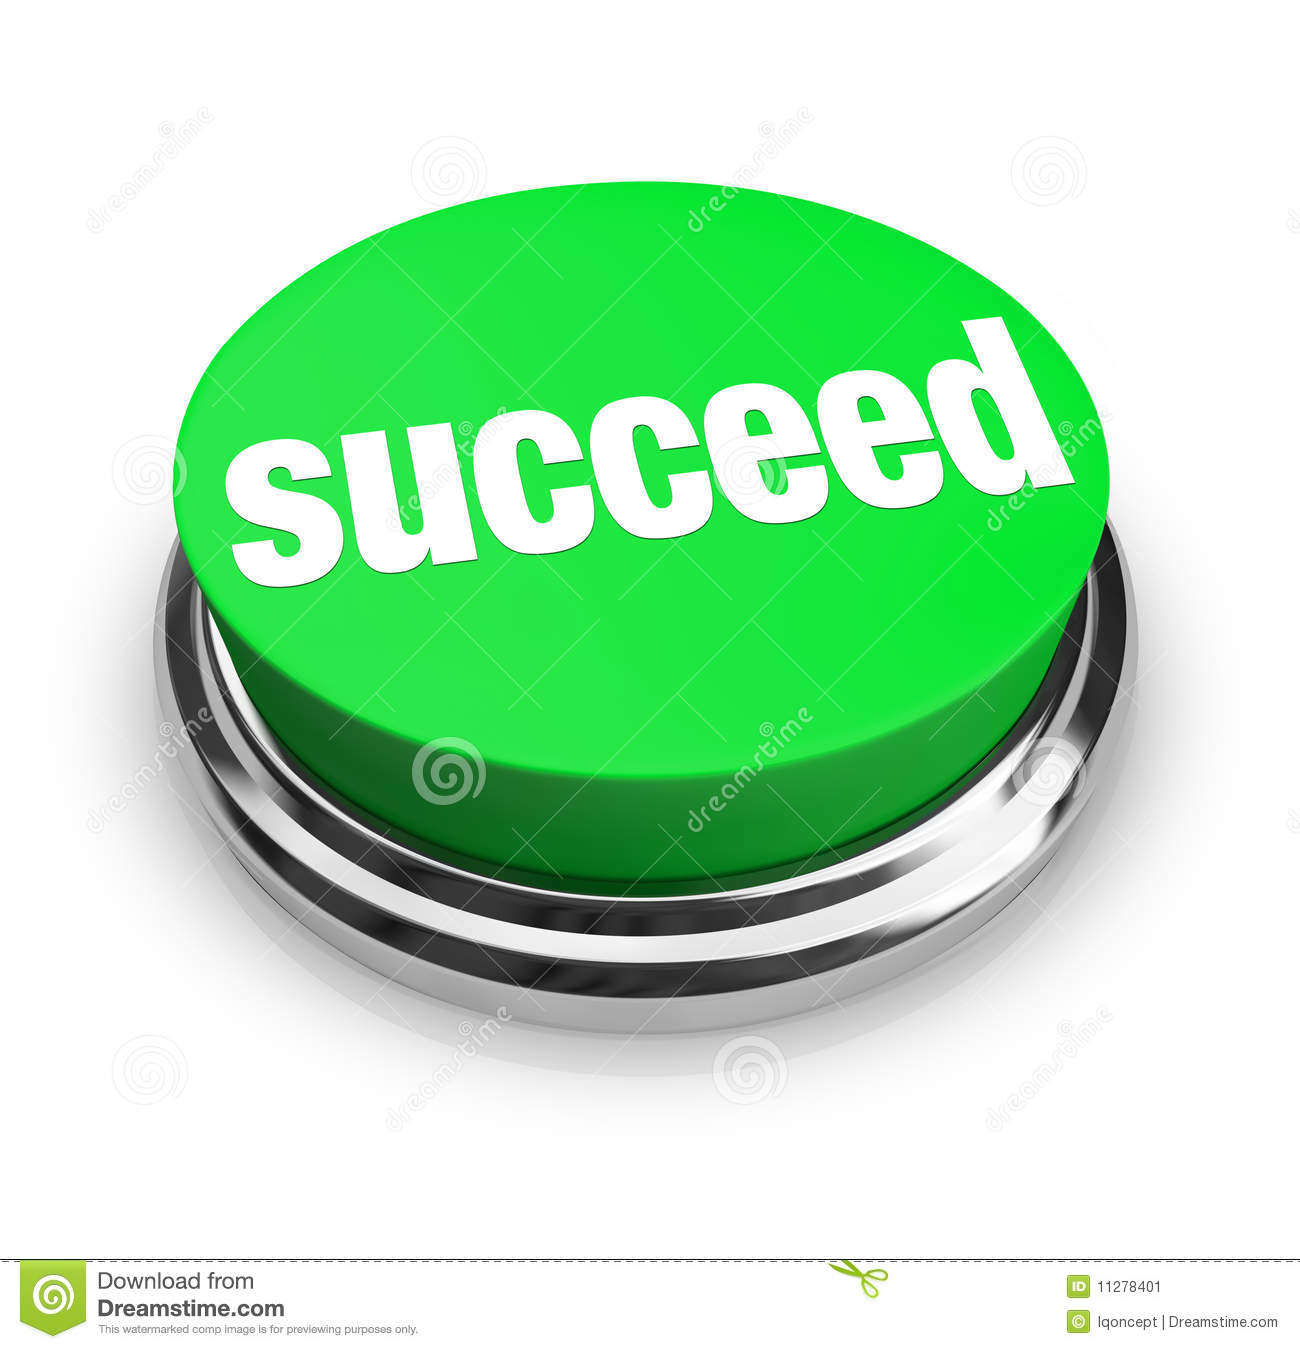 Succeed - Green Button